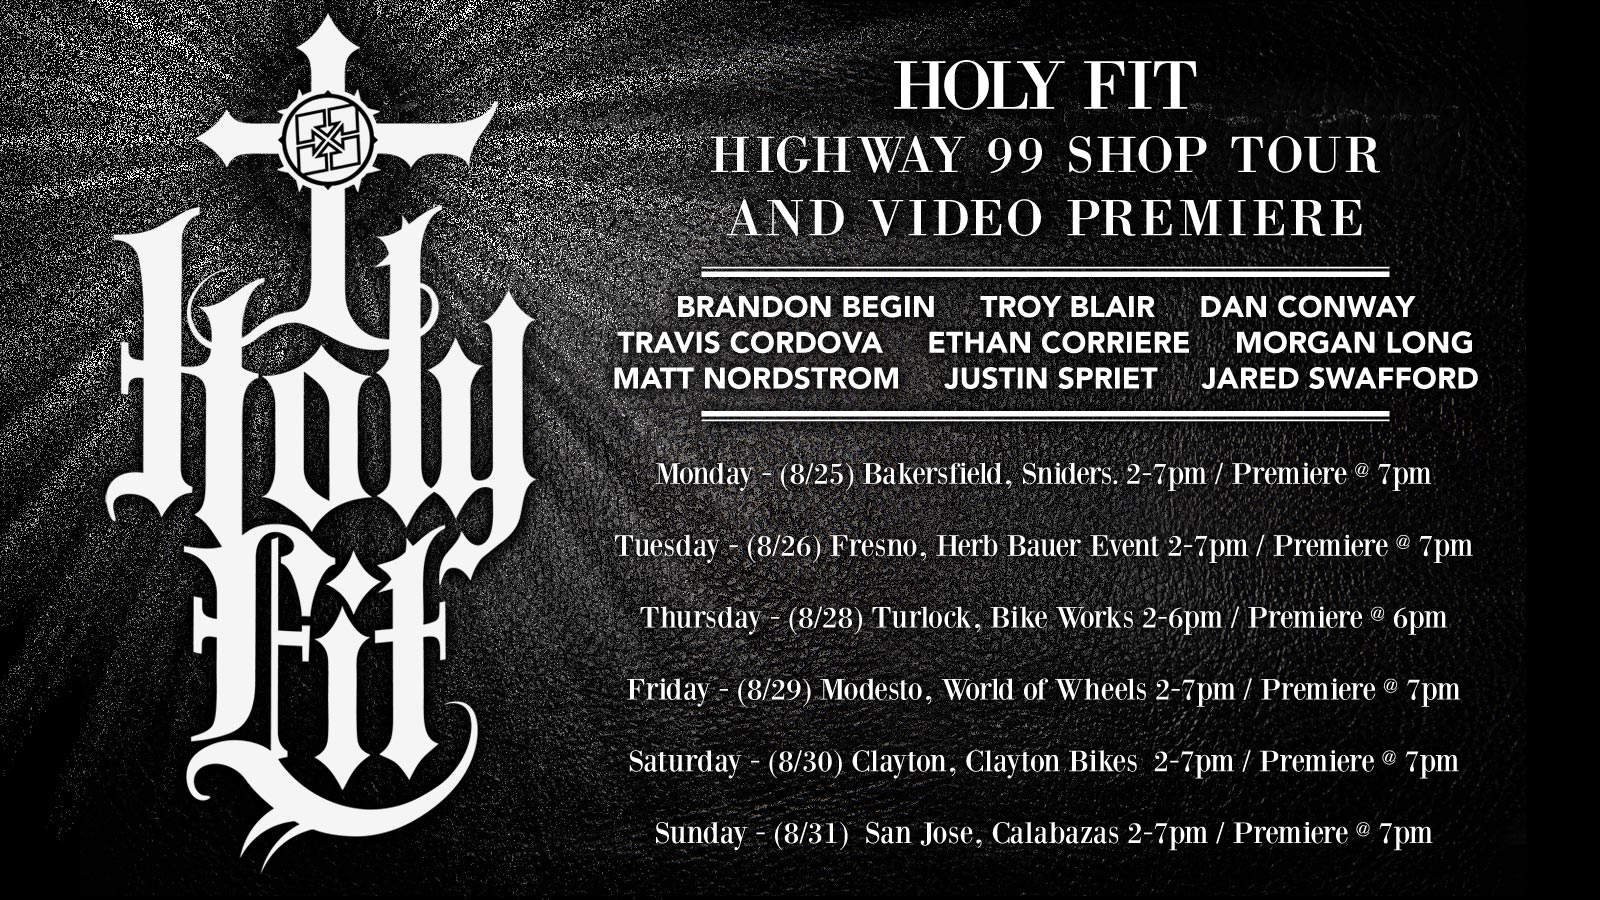 HOLY FIT SHOP AND VIDEO PREMIERE TOUR